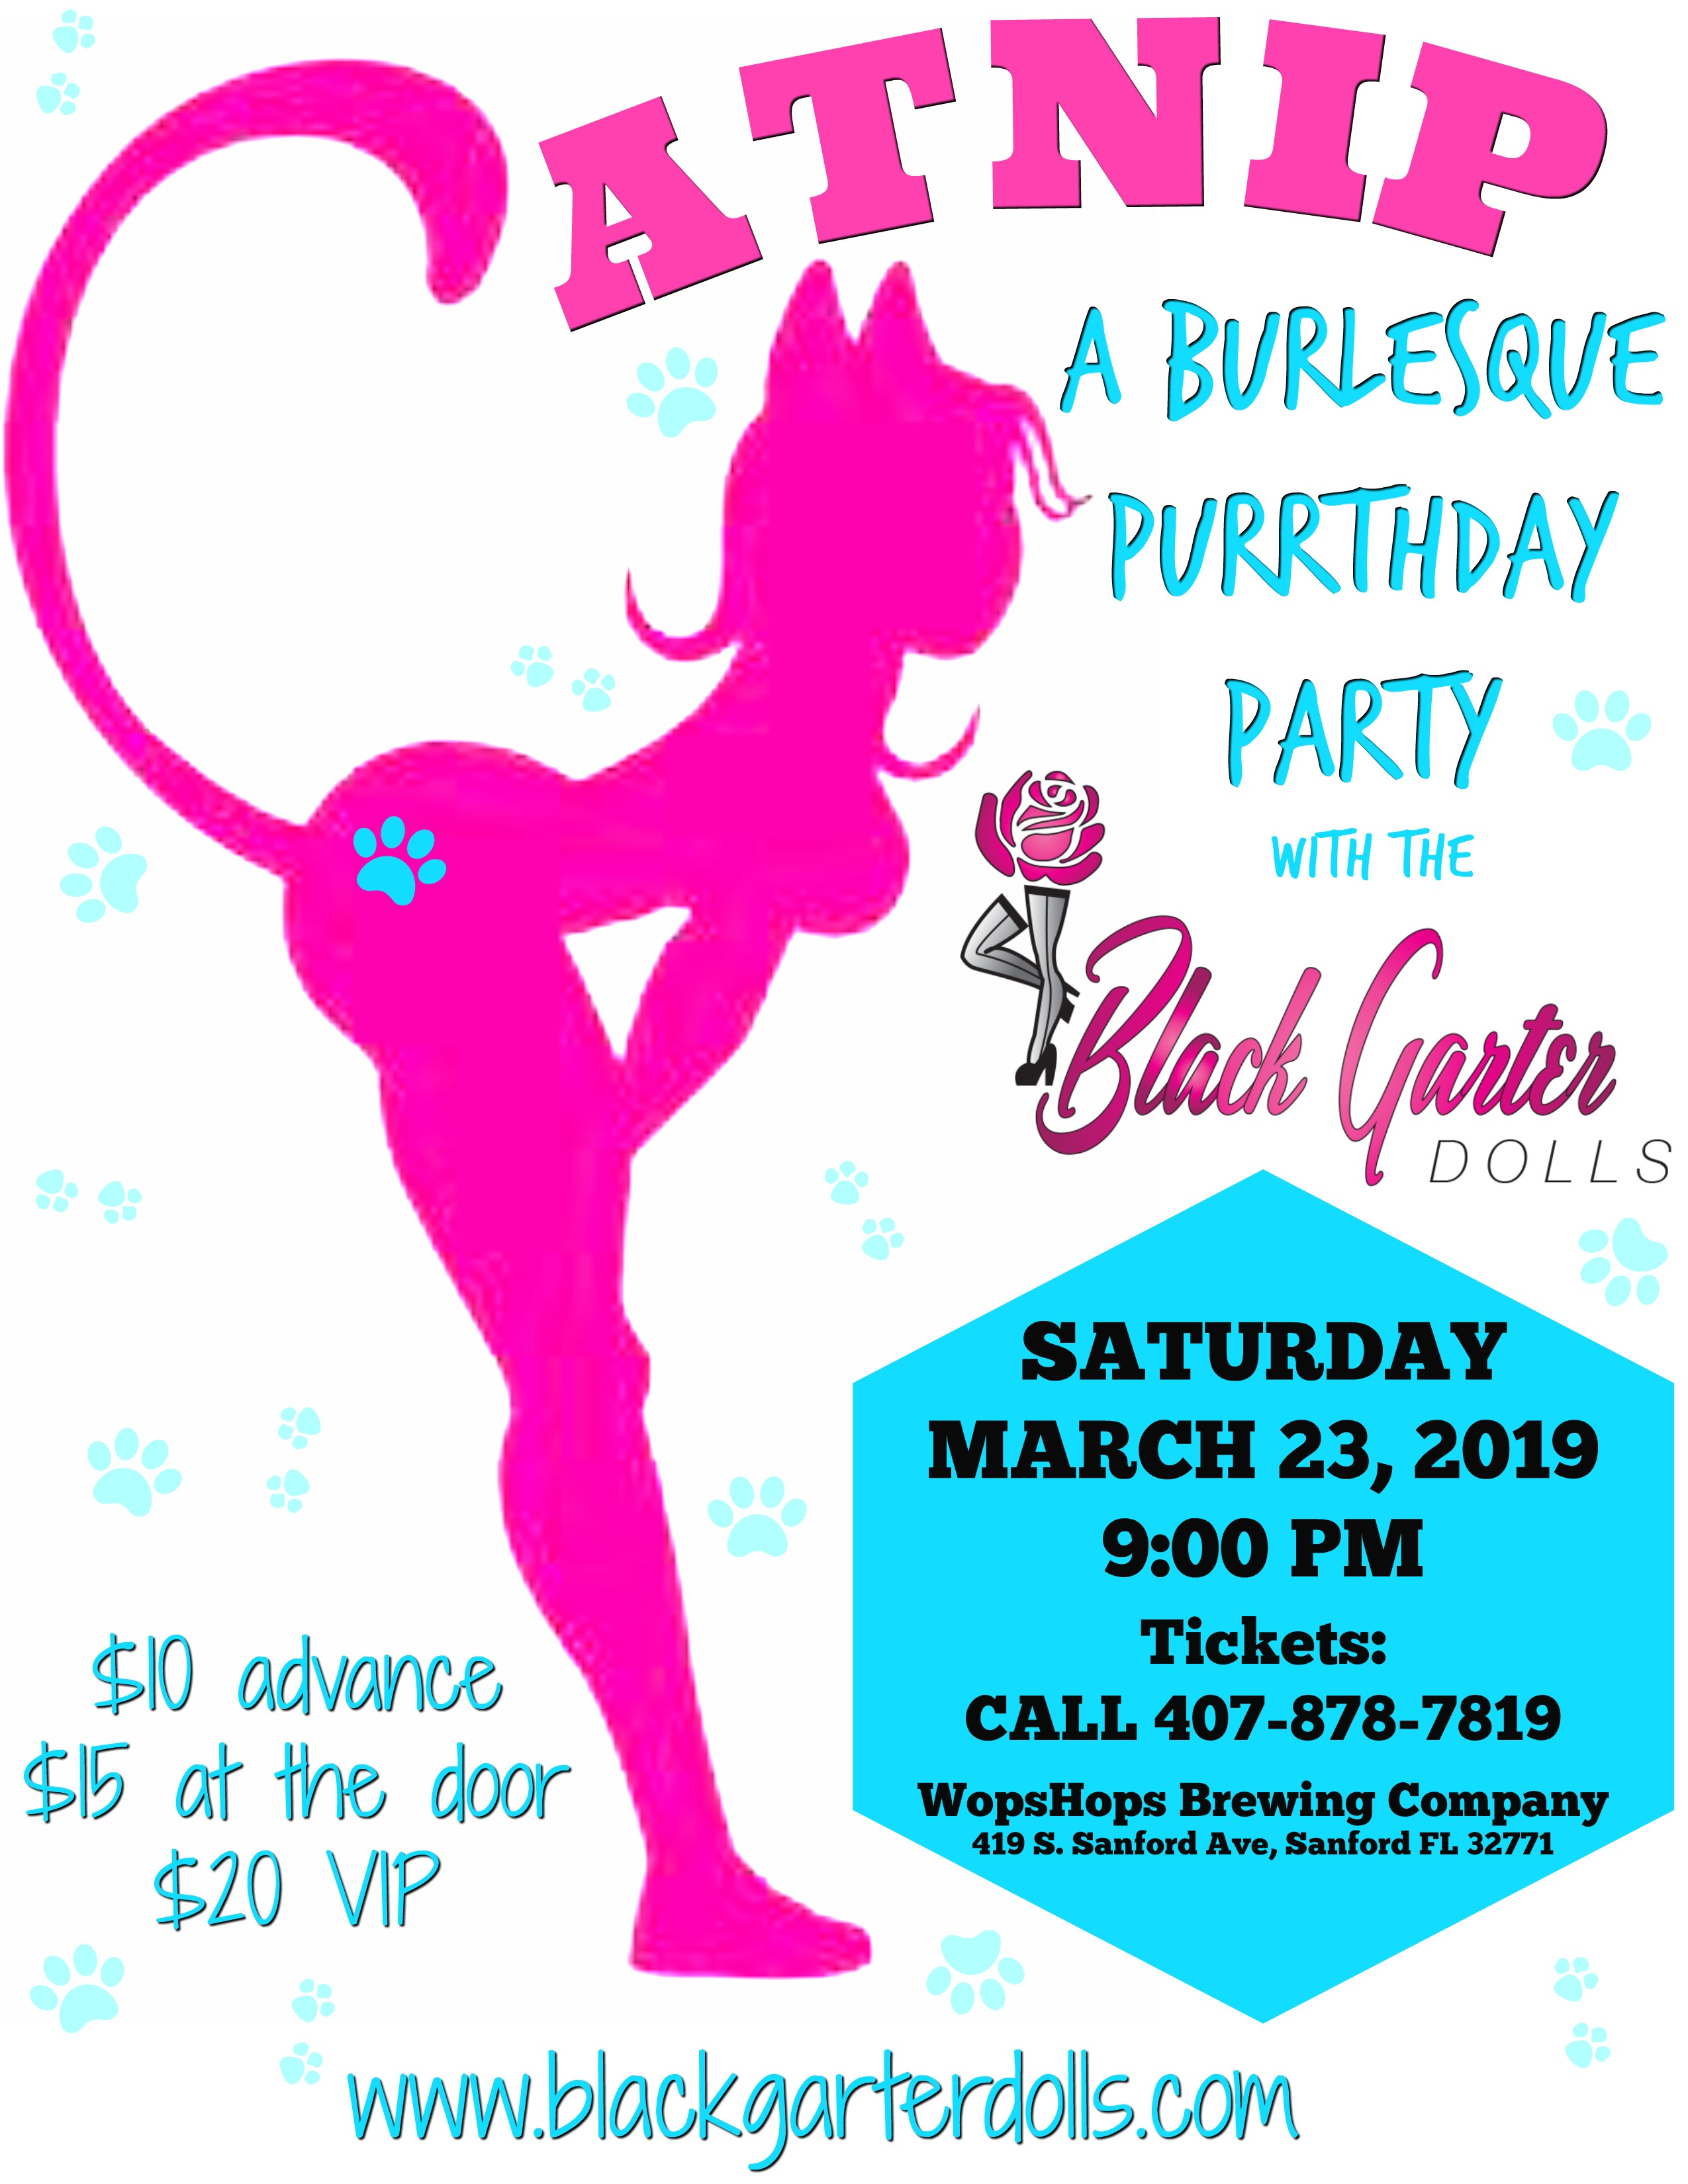 Catnip: A Burlesque Purrthday Party